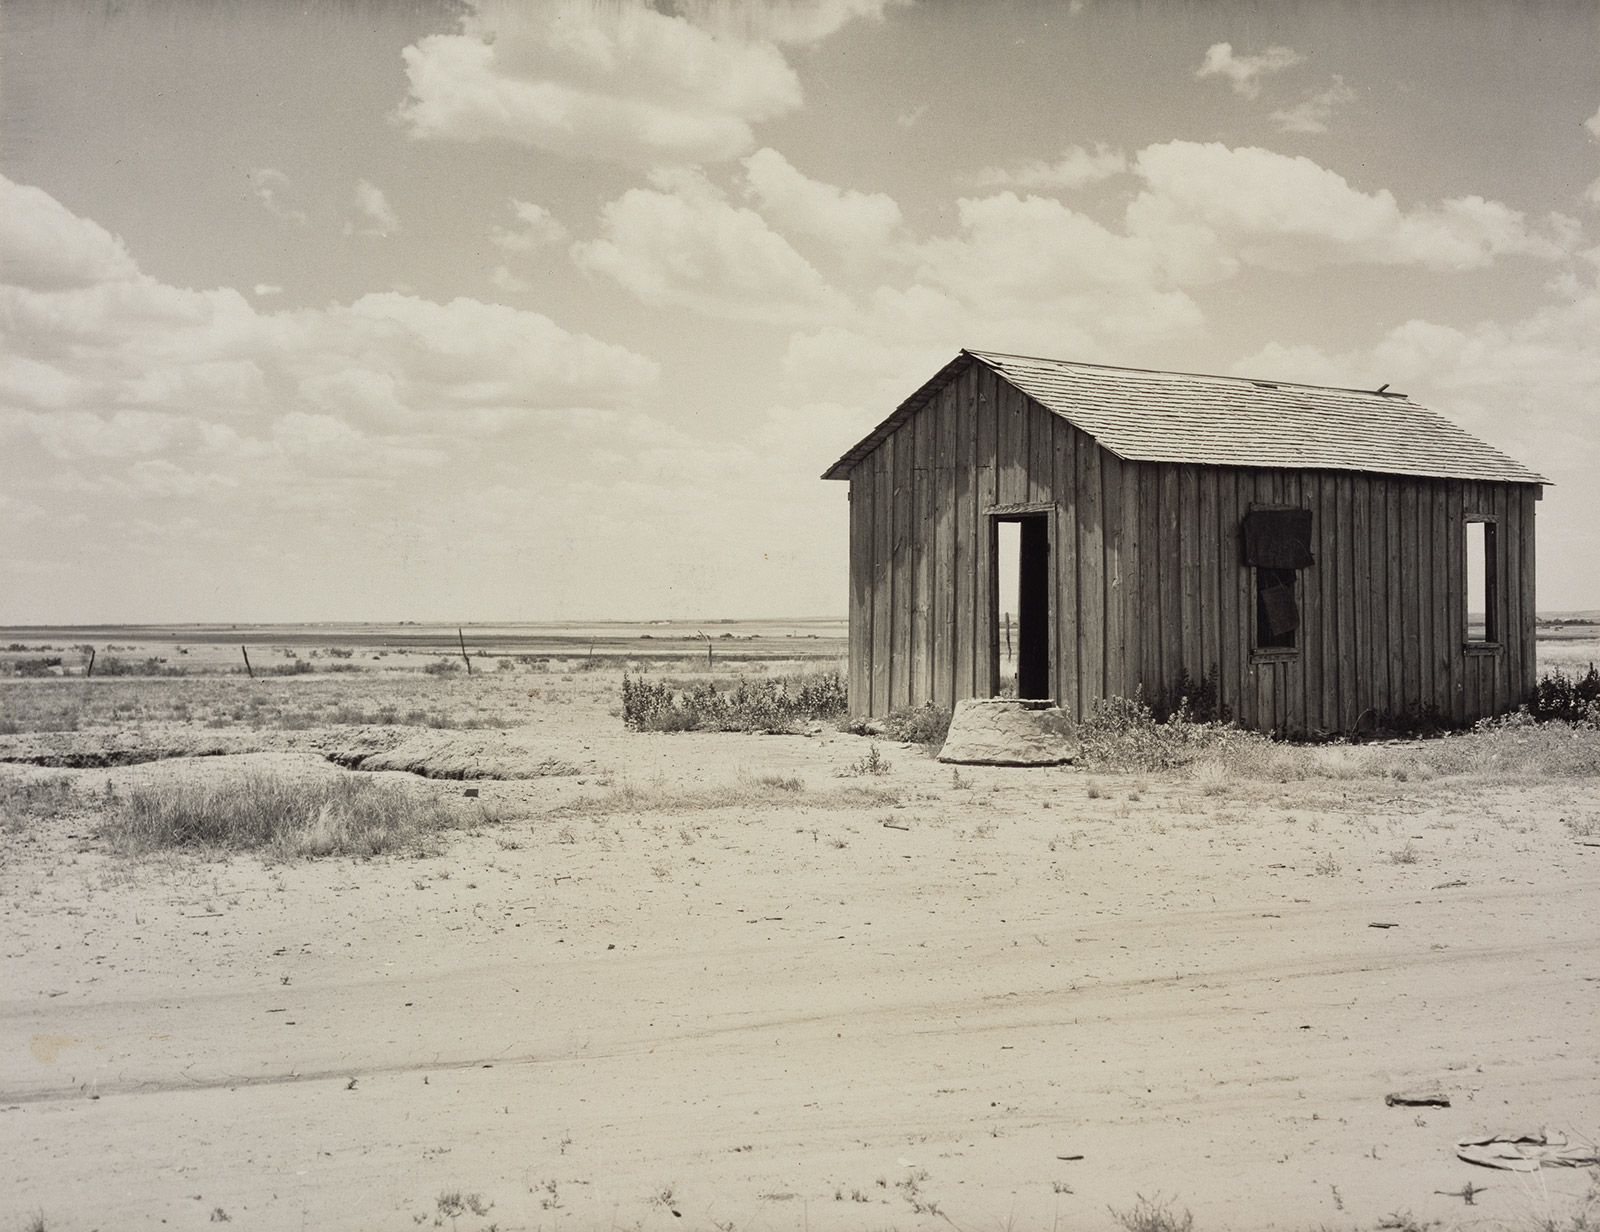 Small abandoned shack with one door and two windows visible, on a barren plain with nothing in the distance.